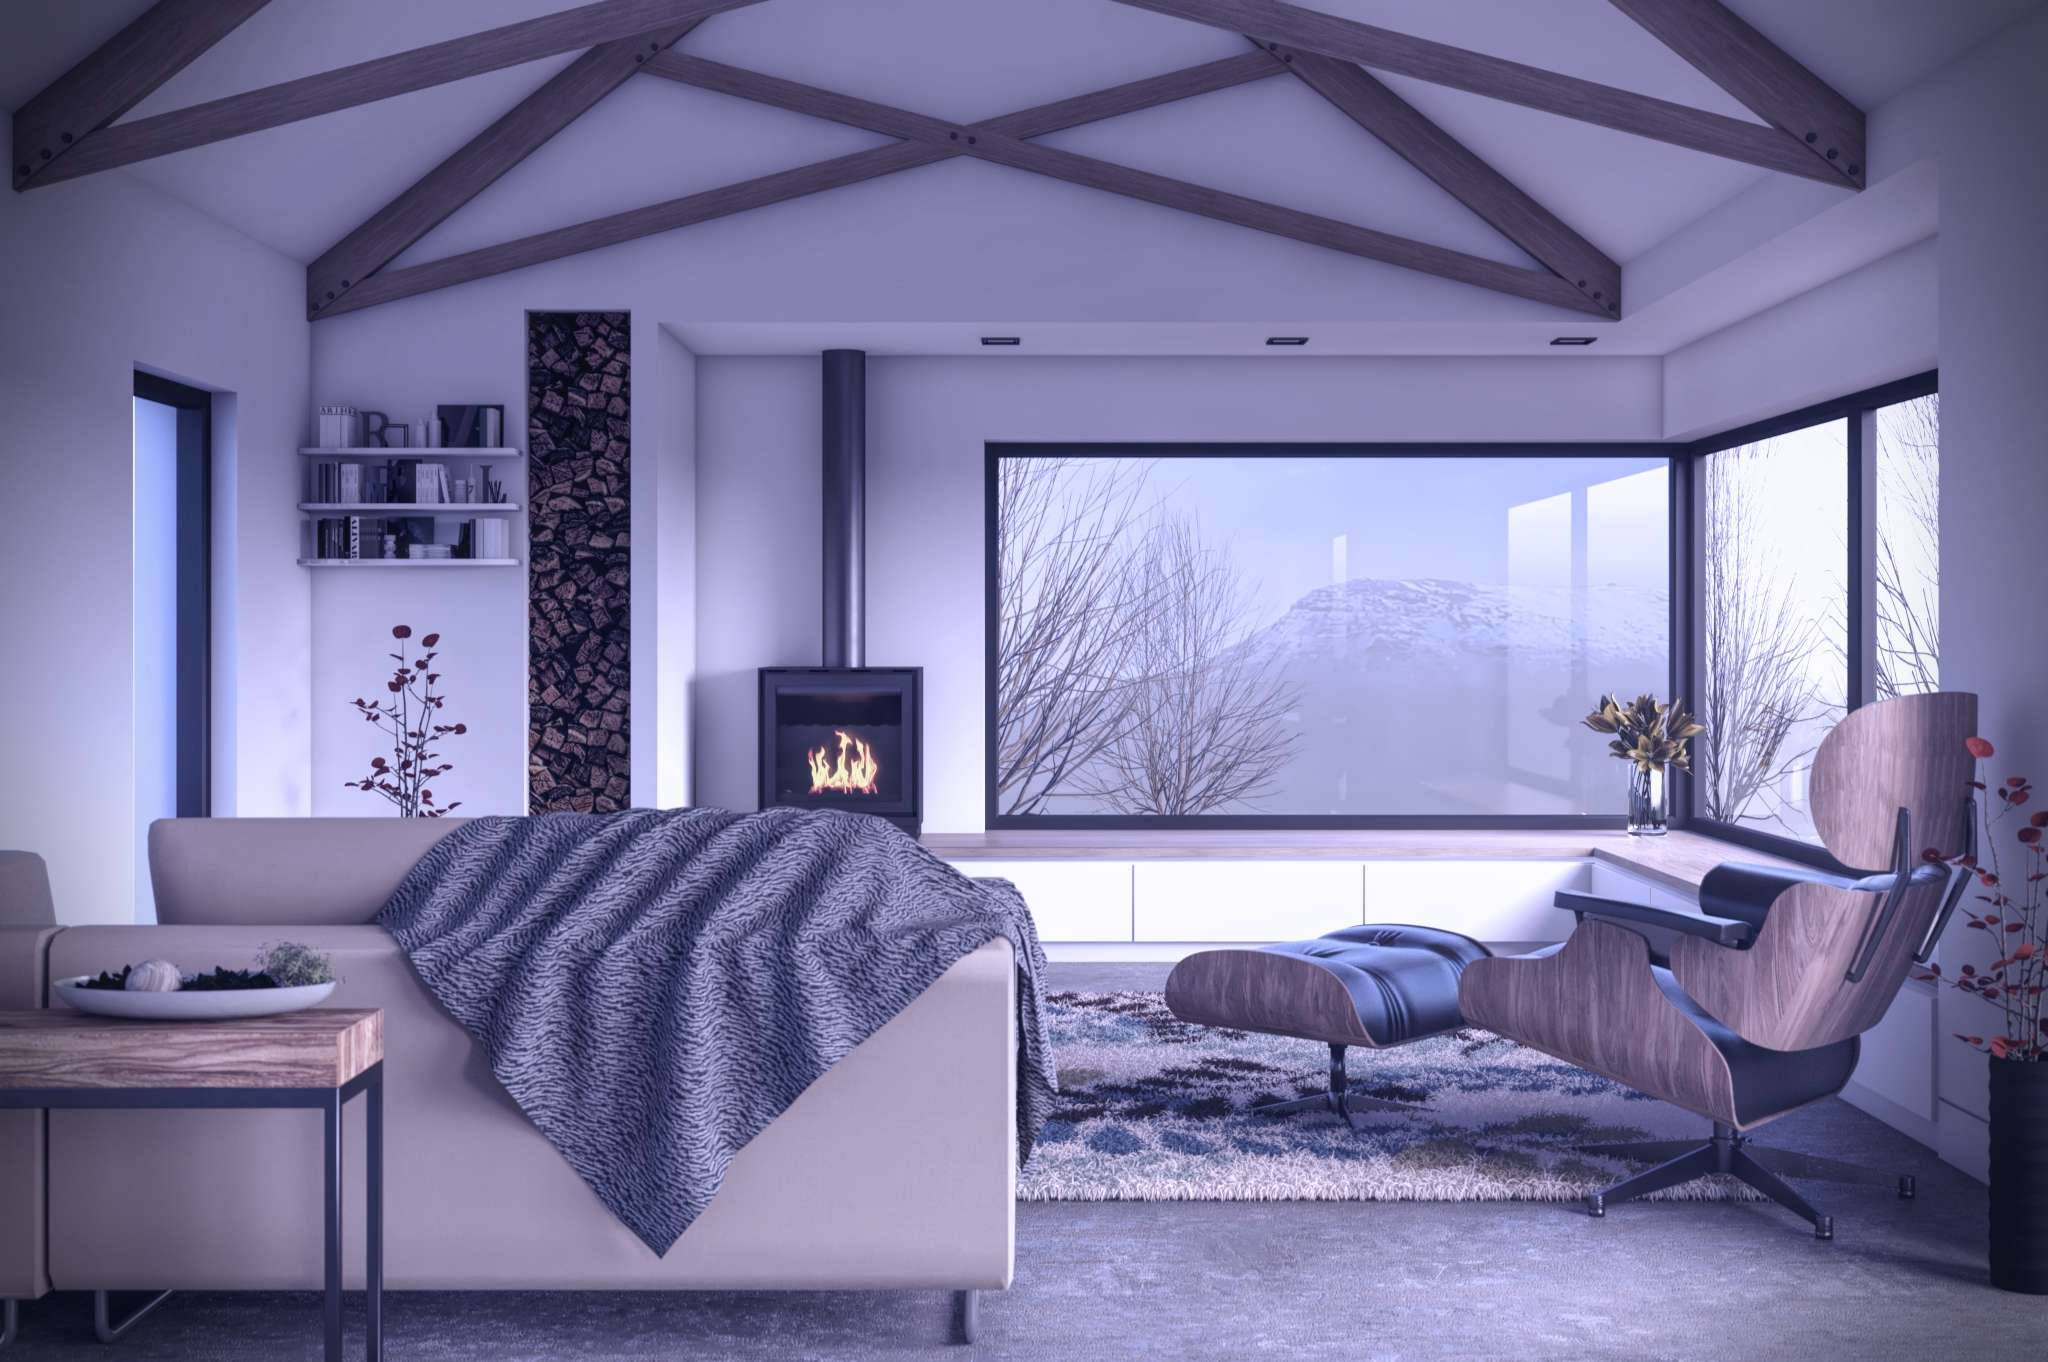 internal images of woodburning stove and wooden trusses